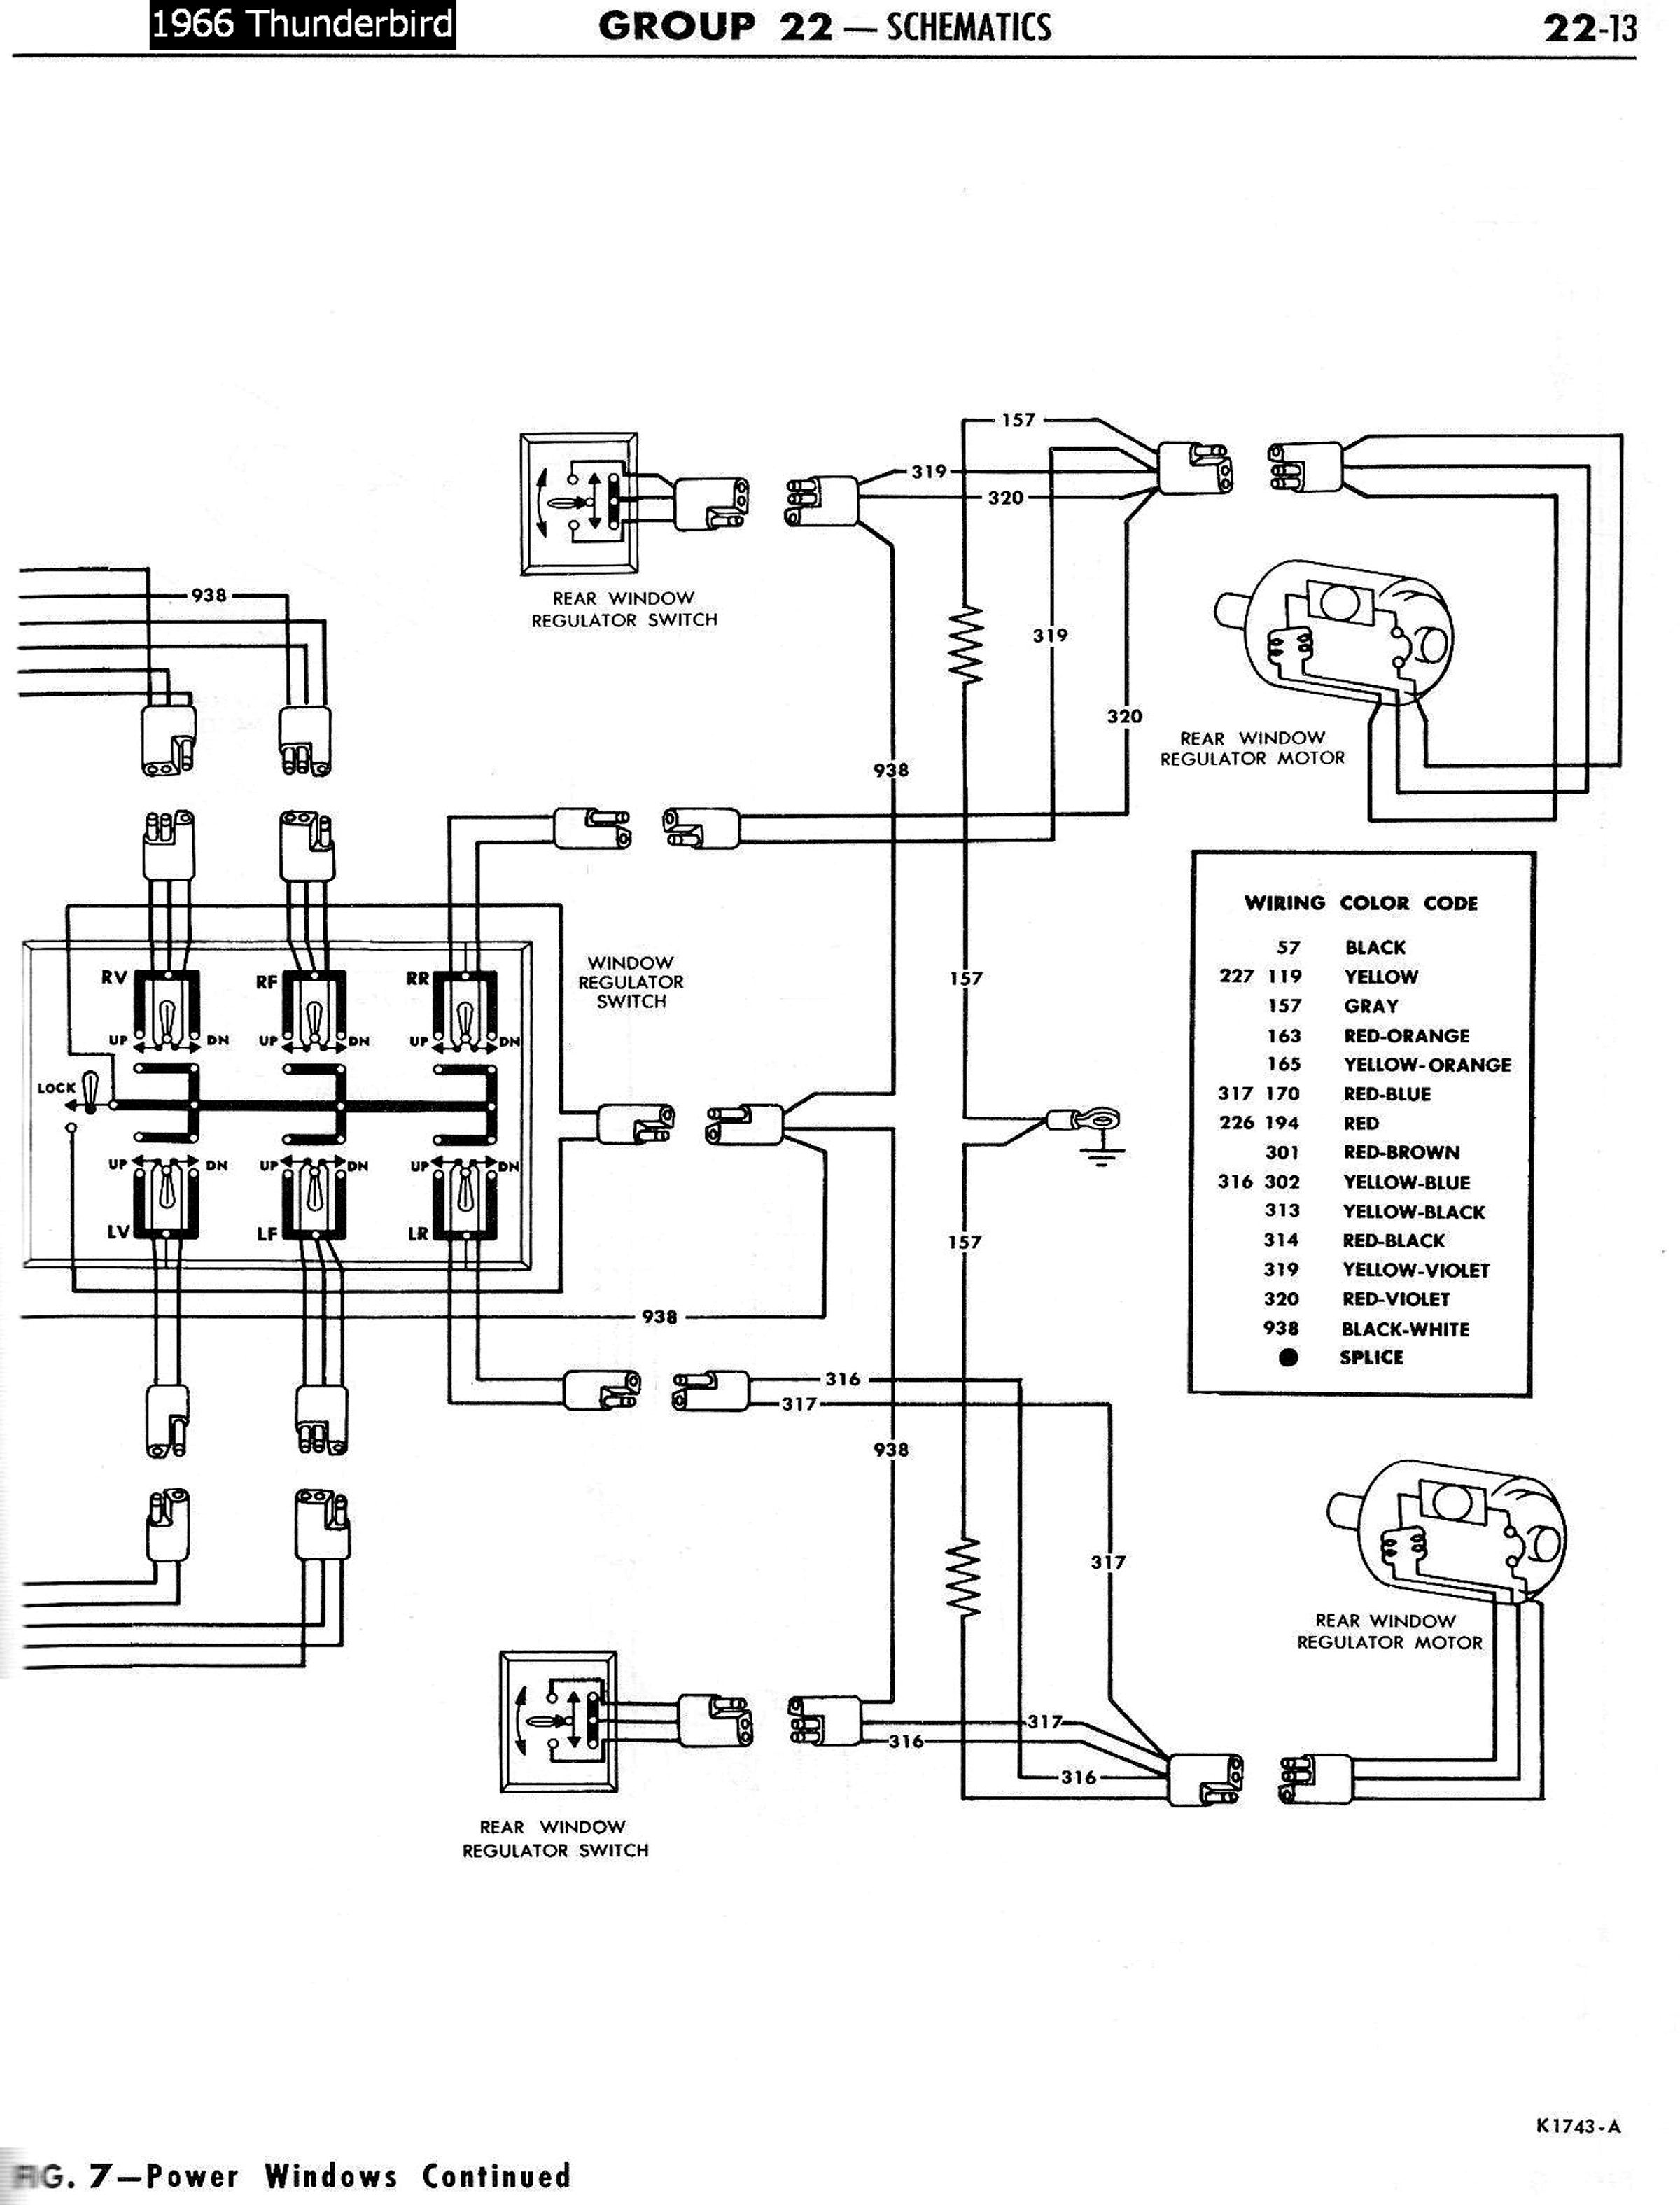 1966 Mustang Electrical Wiring Diagram